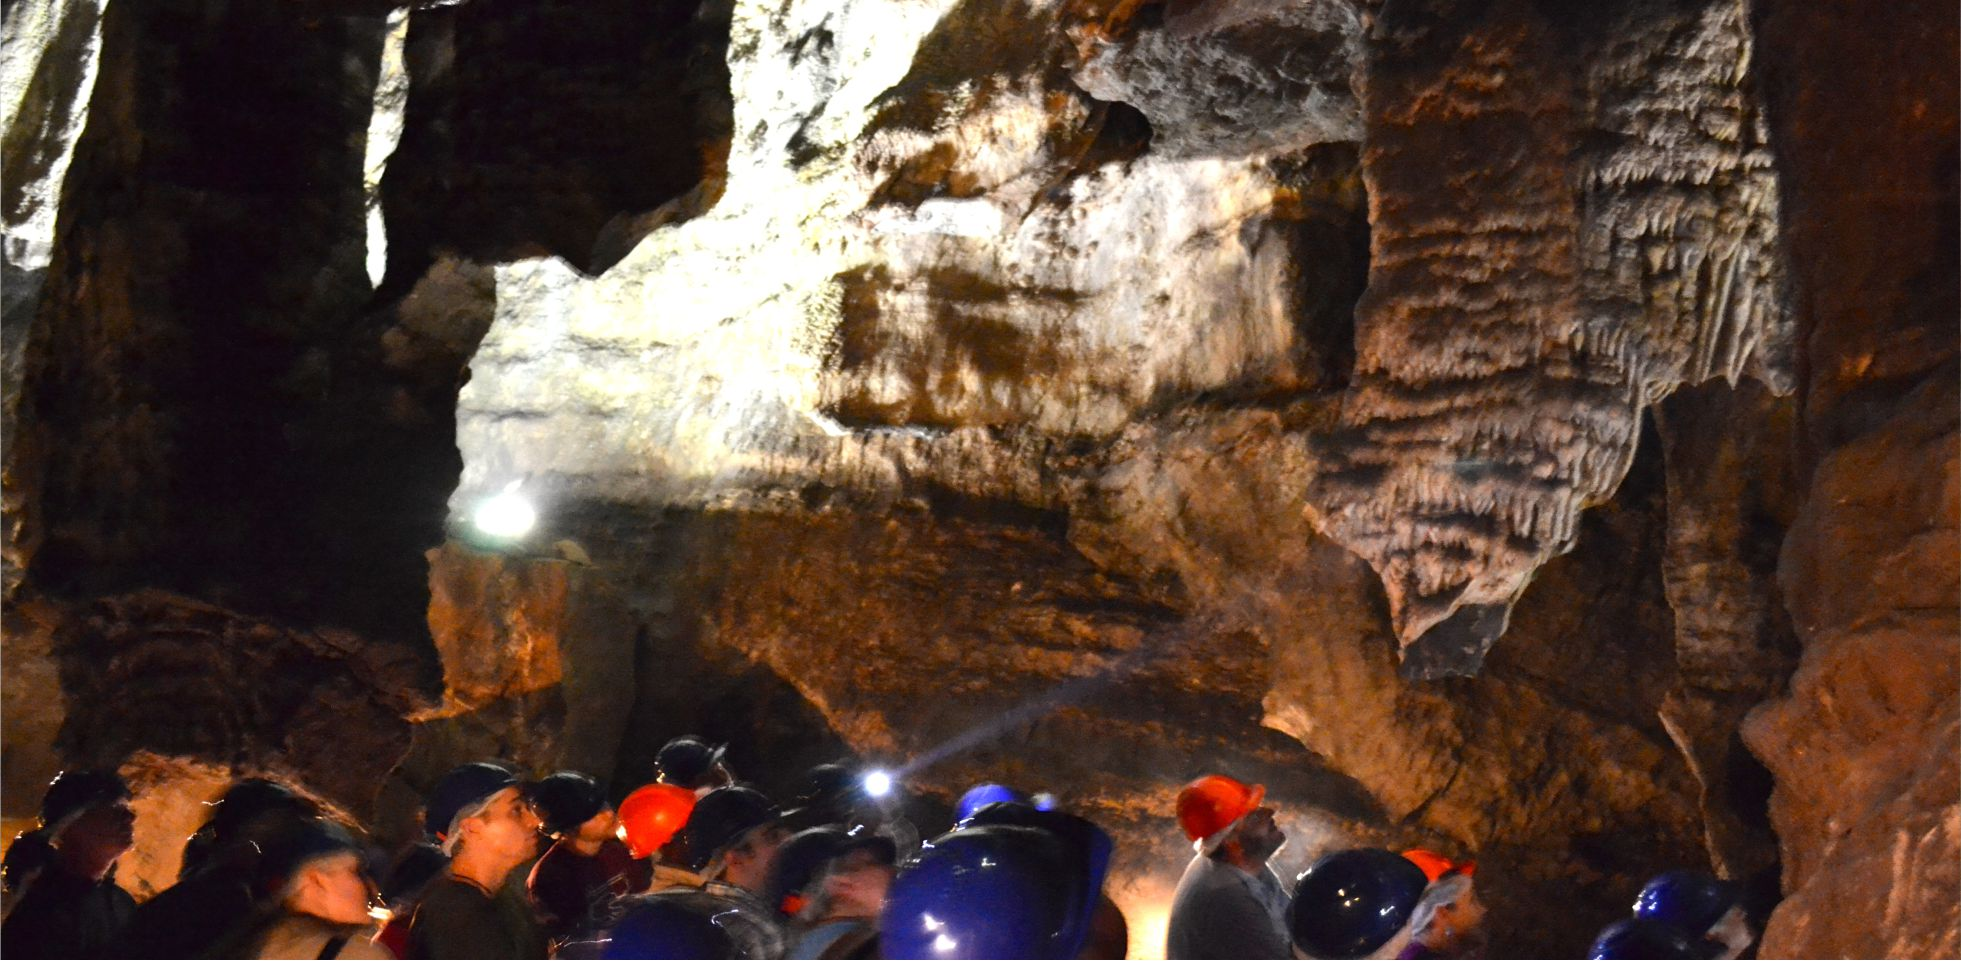 Daytrips to Sterkfontein Caves